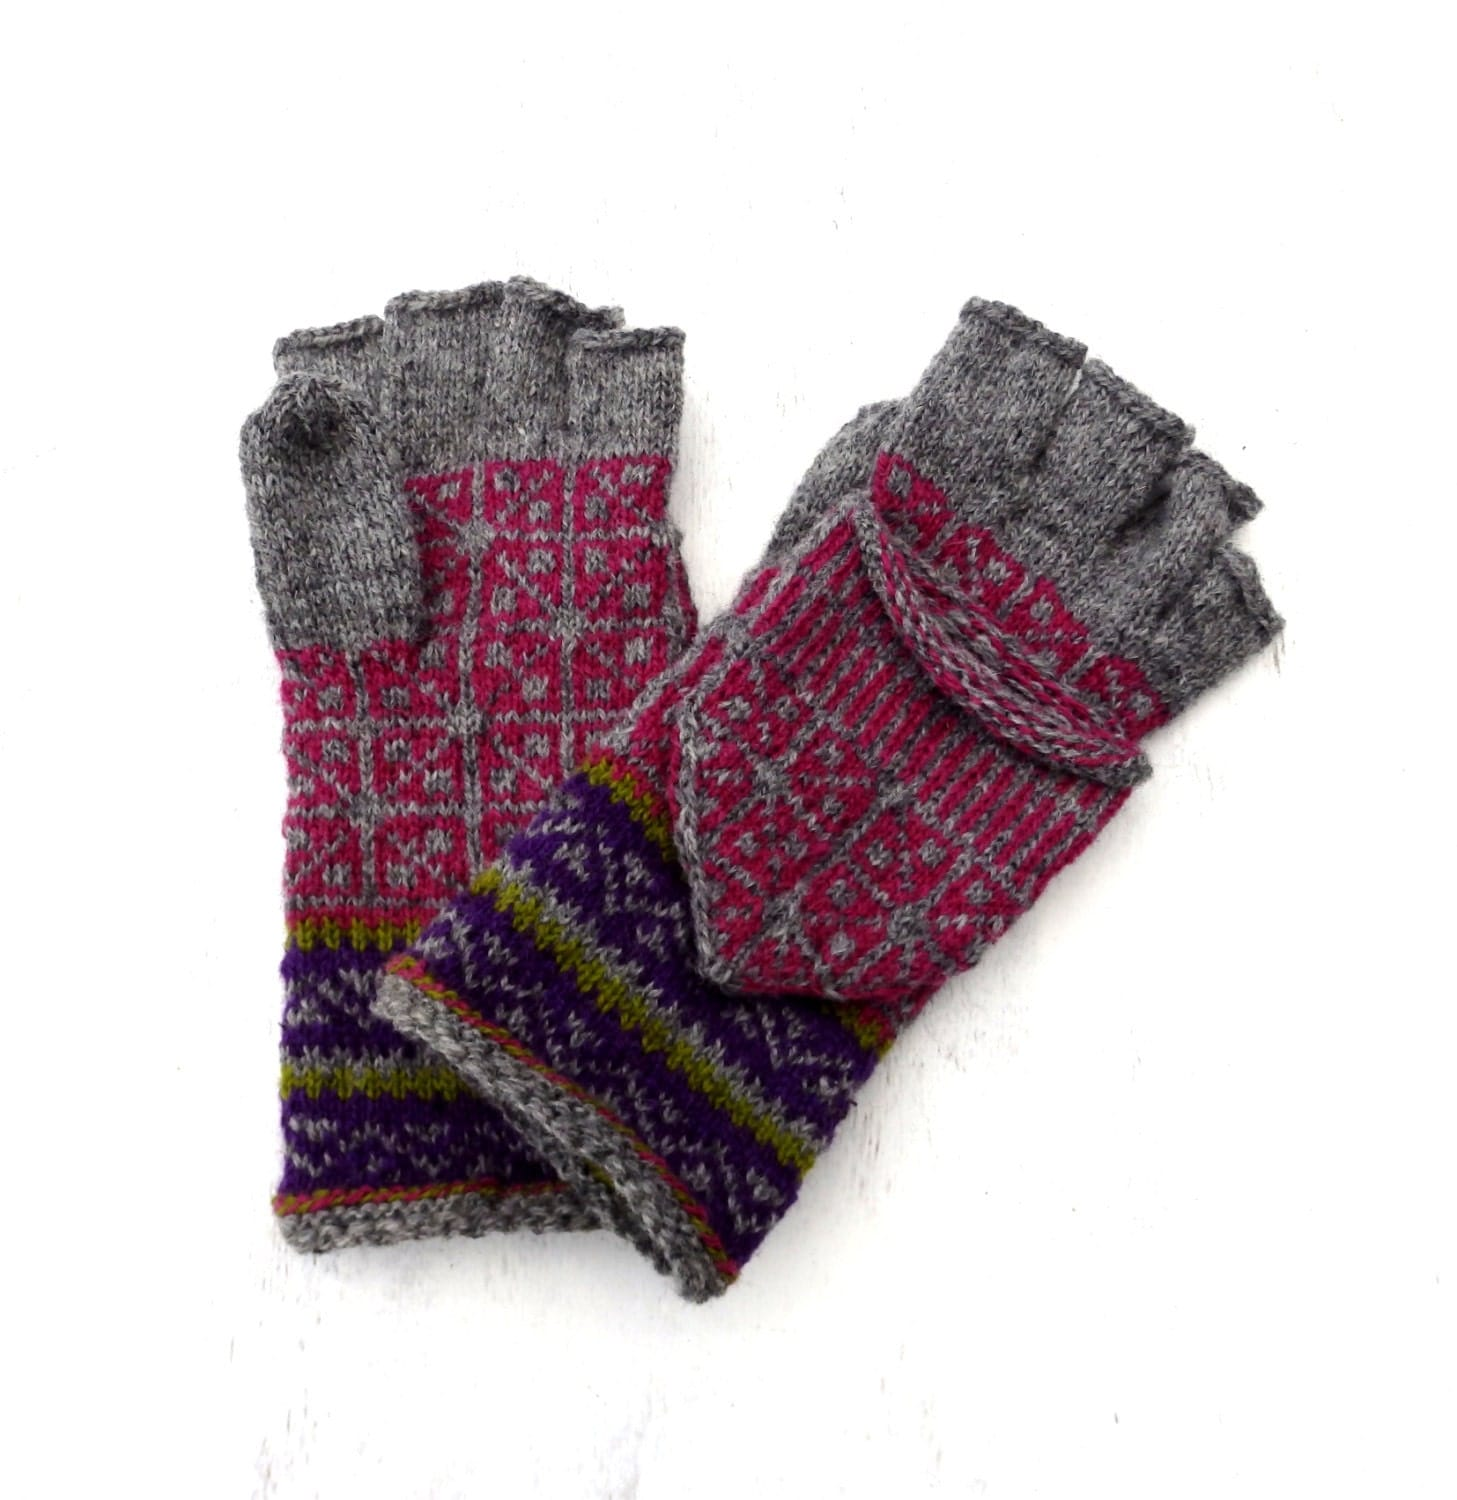 Convertible Mitten Knitting Pattern : Hand knitted wool convertible gloves knit hooded adult